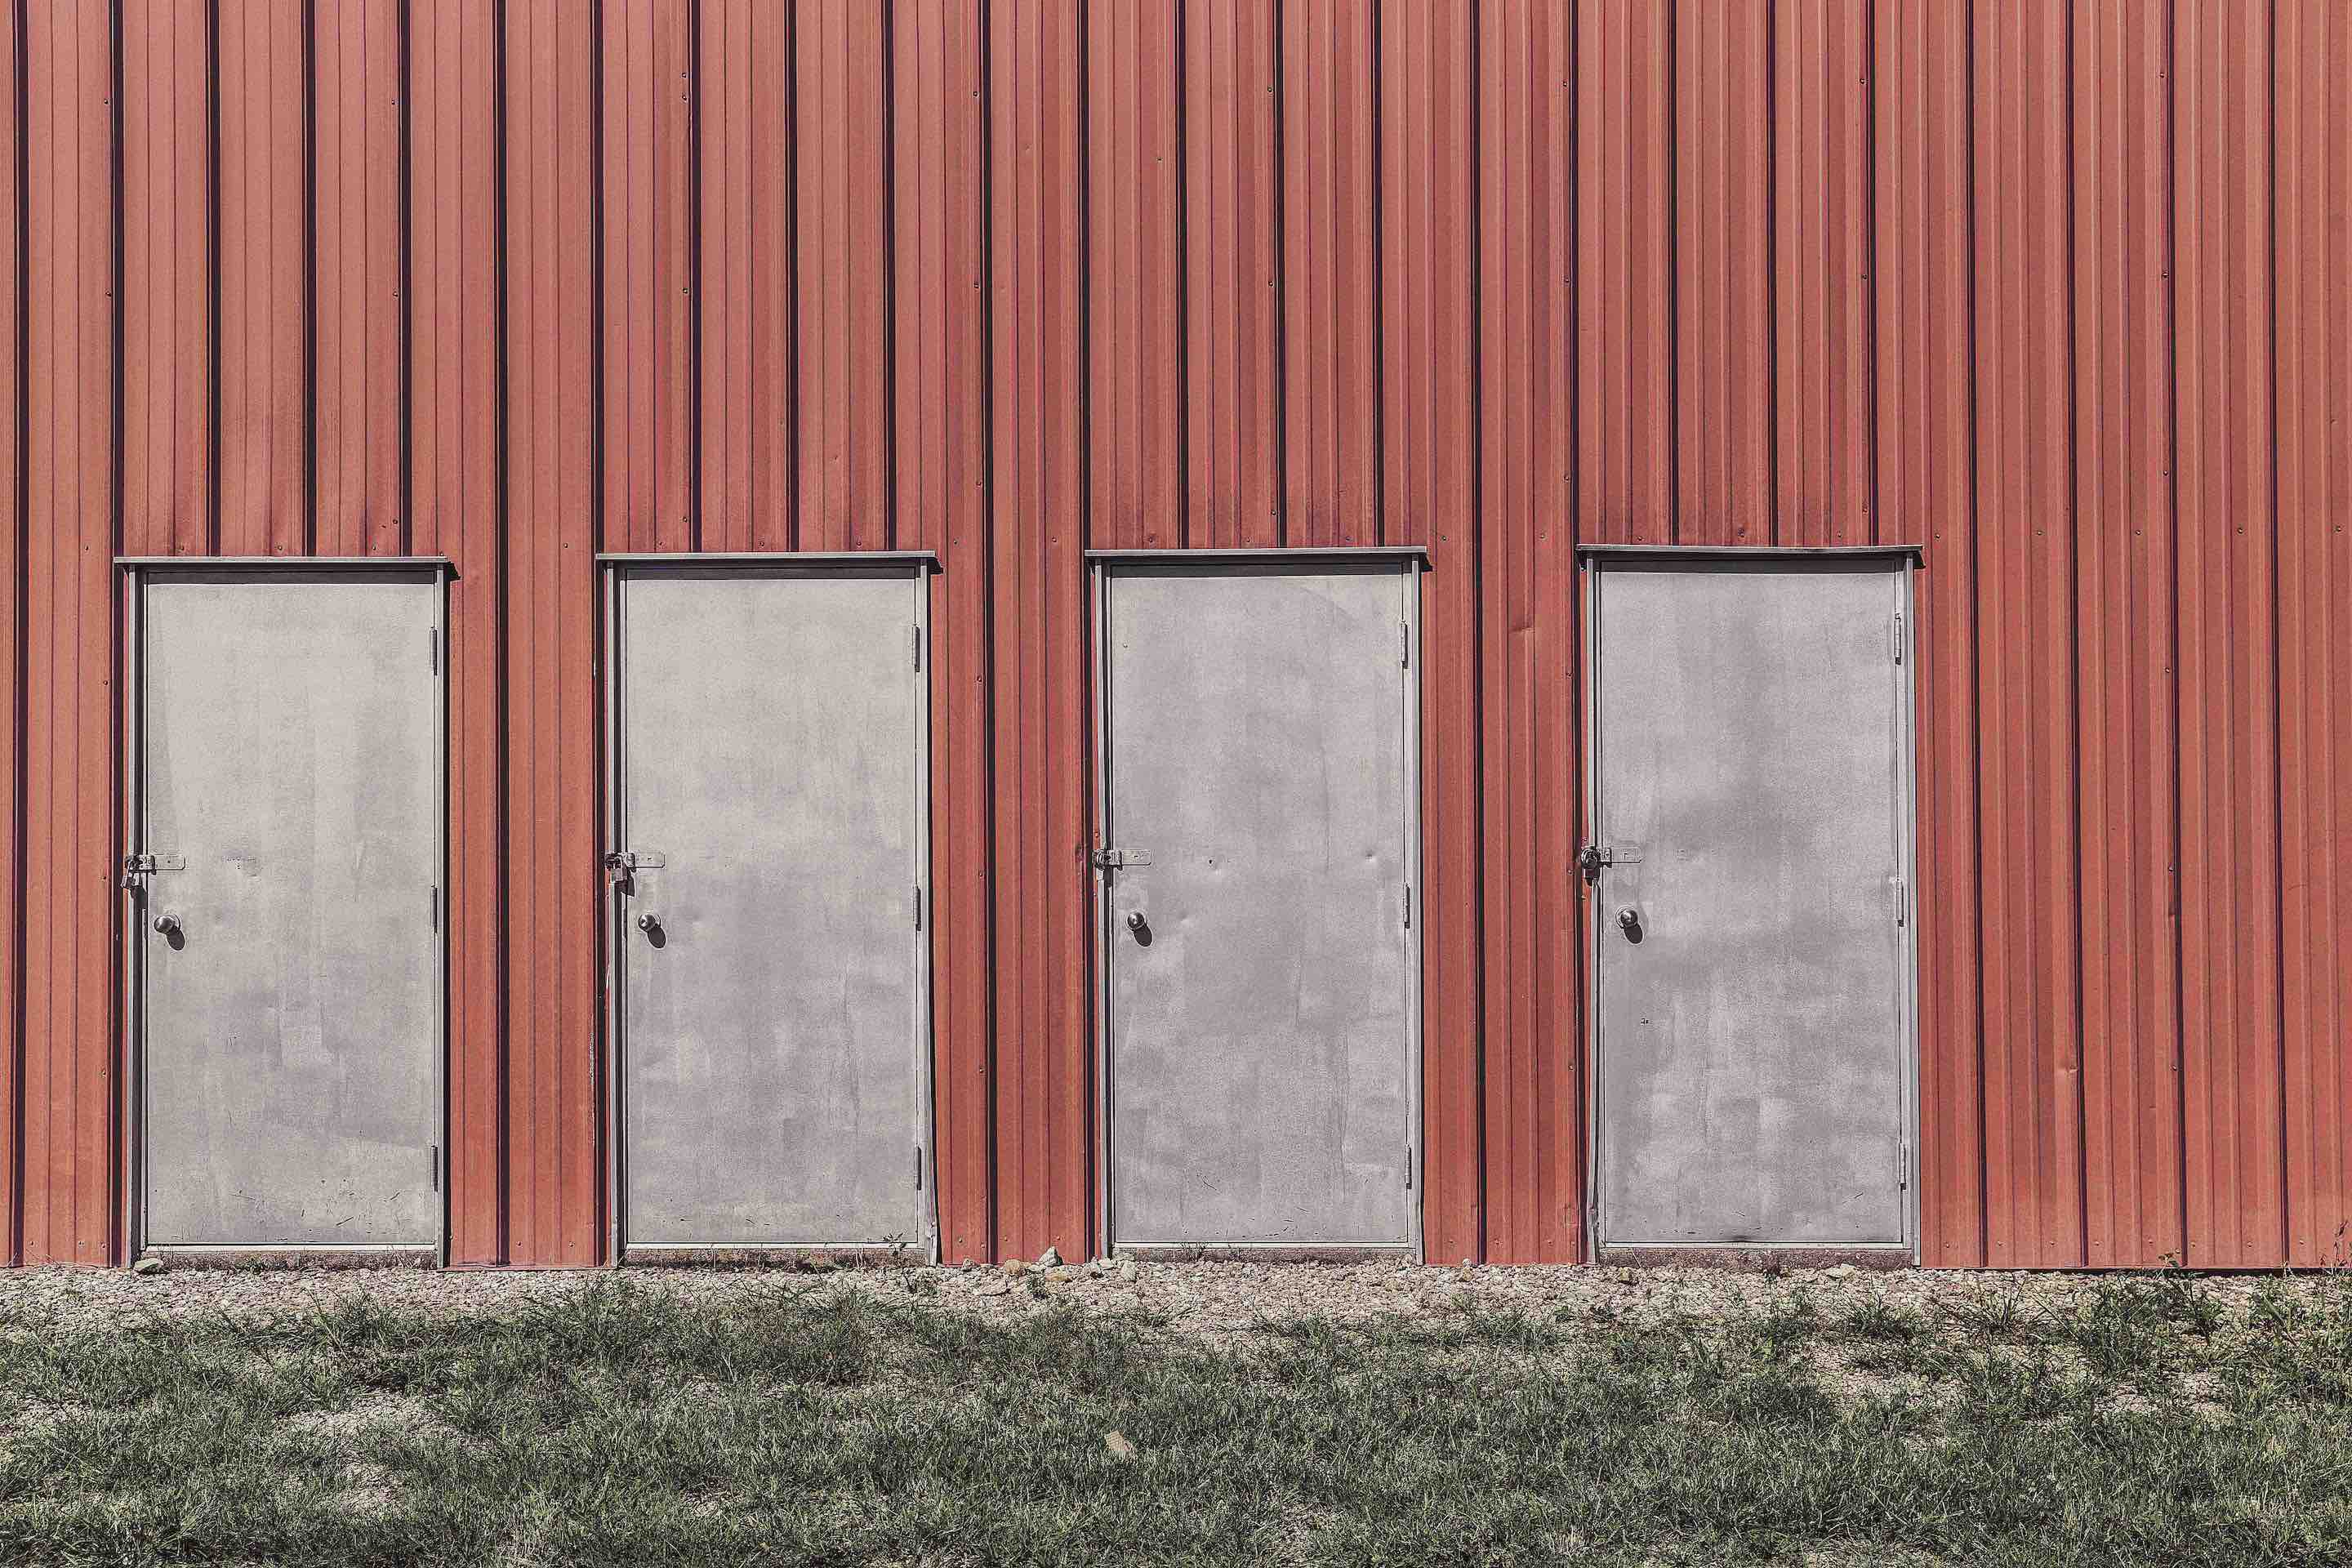 Where to Find Flexible Warehousing Options in a Tight Economy